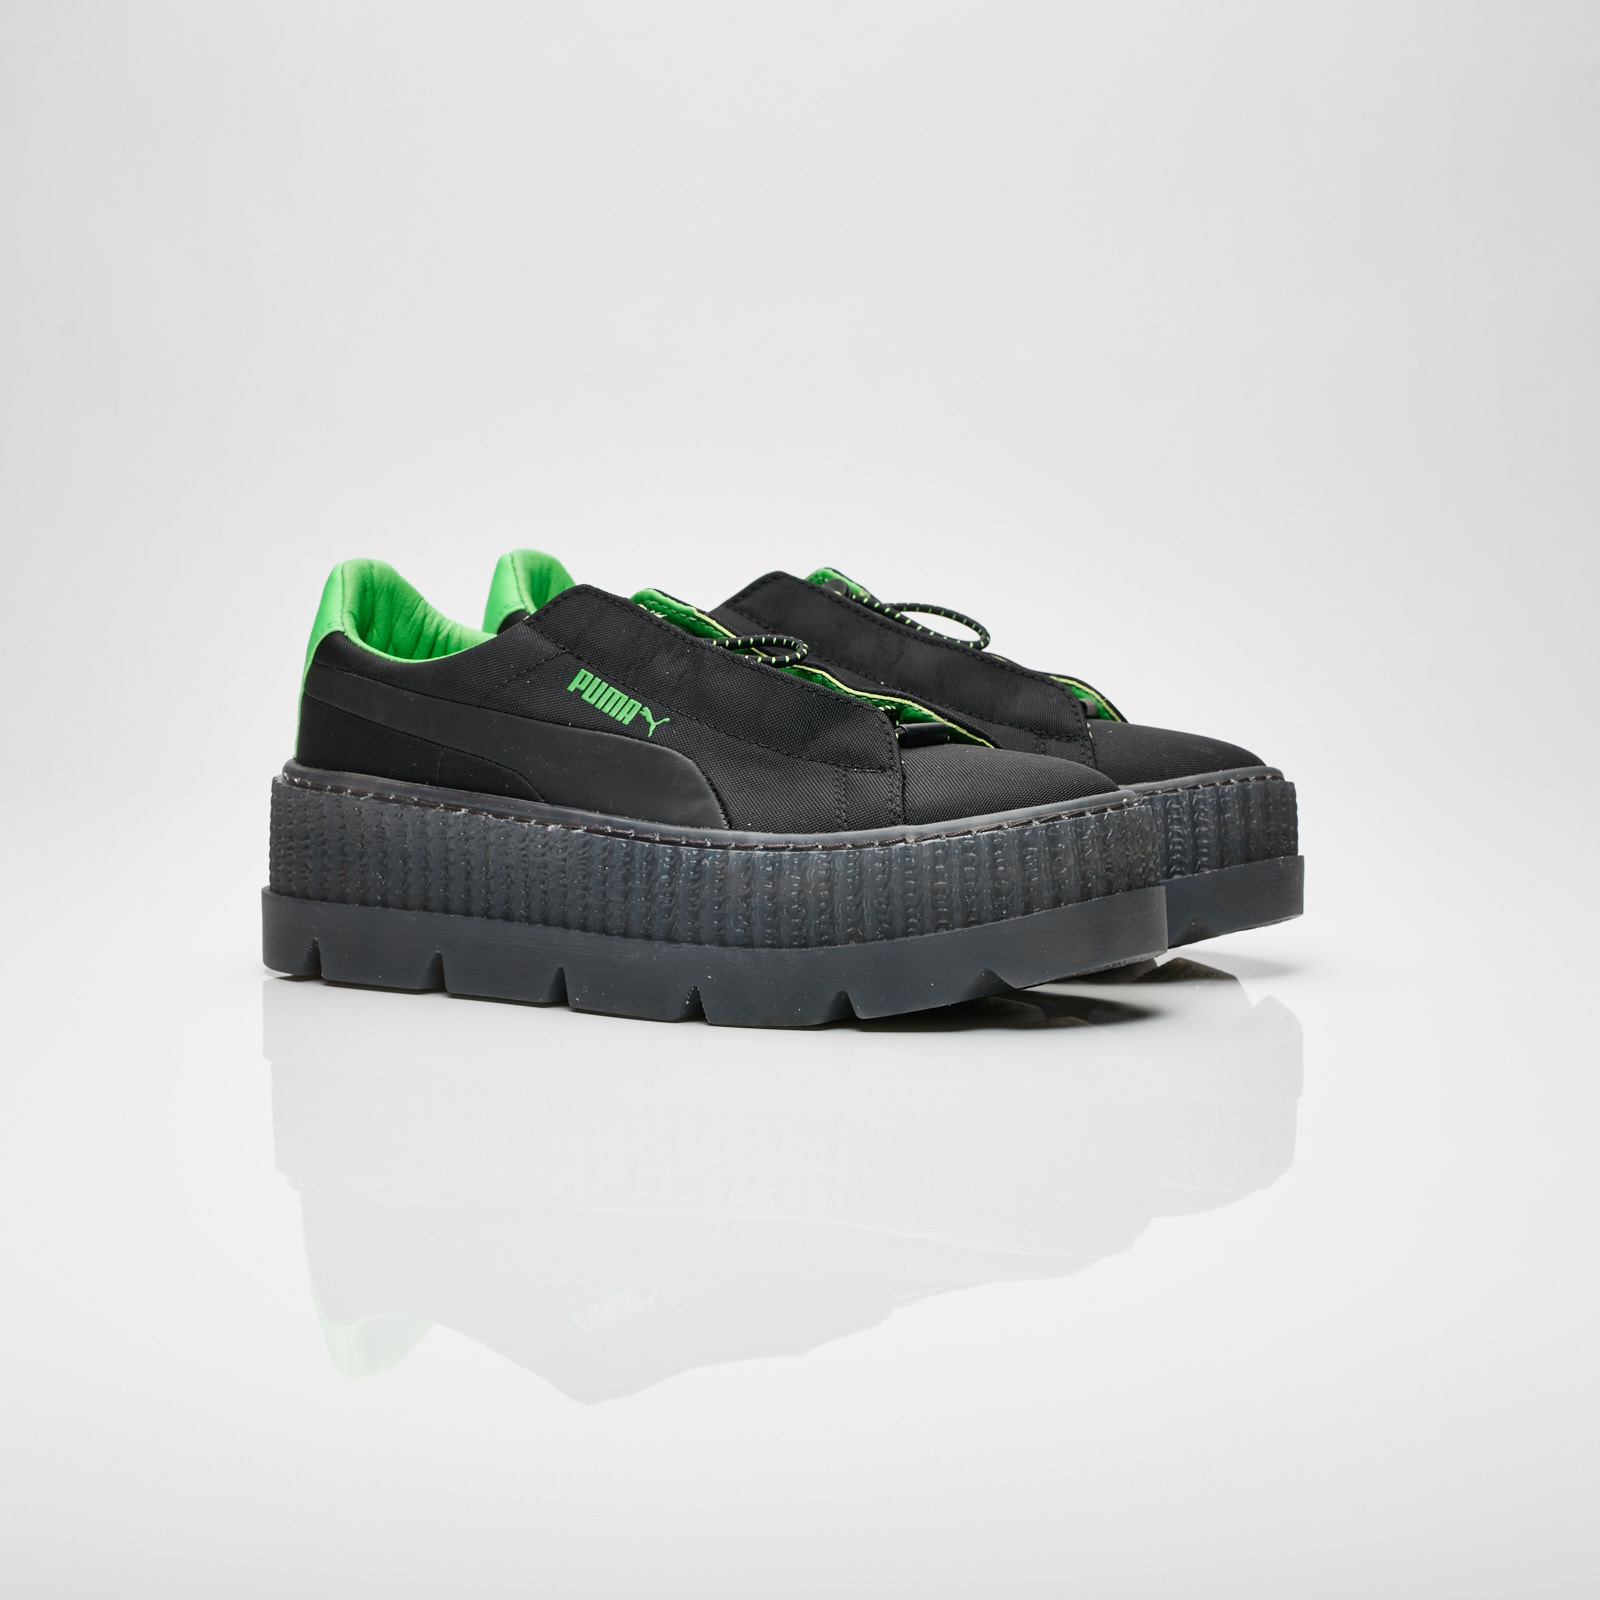 d2014c4c5cfd4c Puma Cleated Creeper Surf WNS - 367681-03 - Sneakersnstuff ...